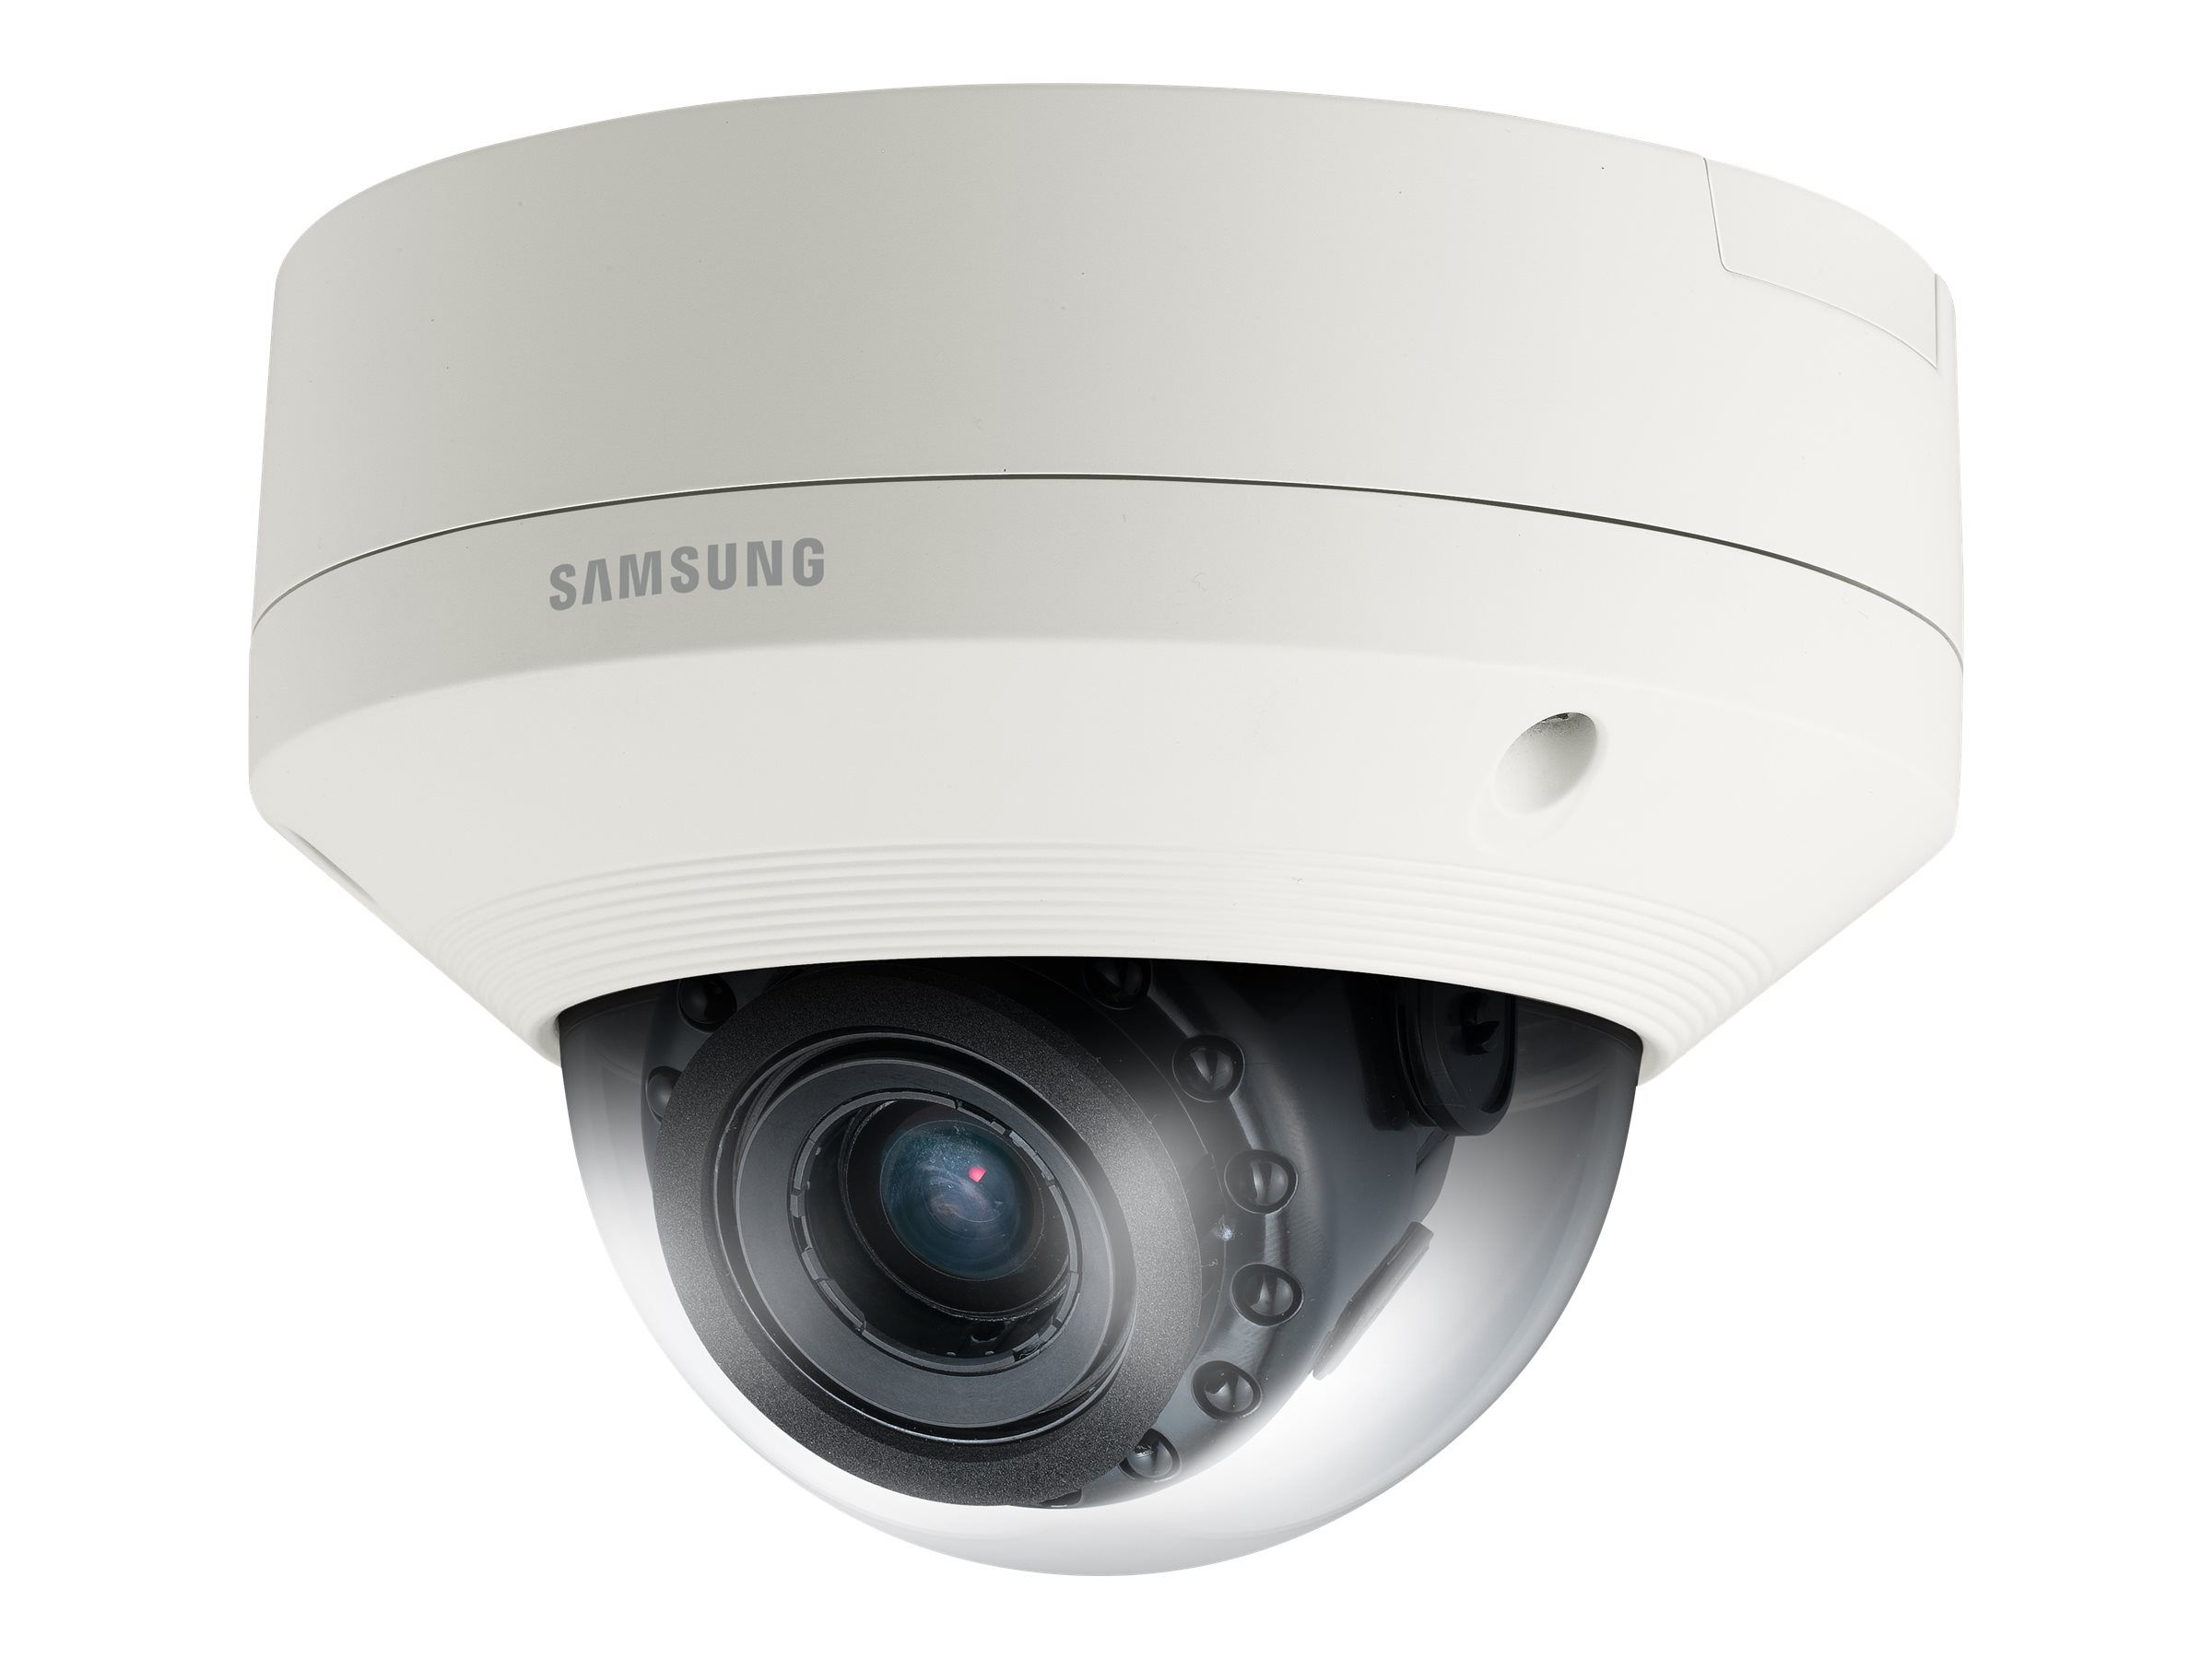 Samsung 2MP Full HD Vandal-Resistant Network IR Dome Camera, SNV-6085R